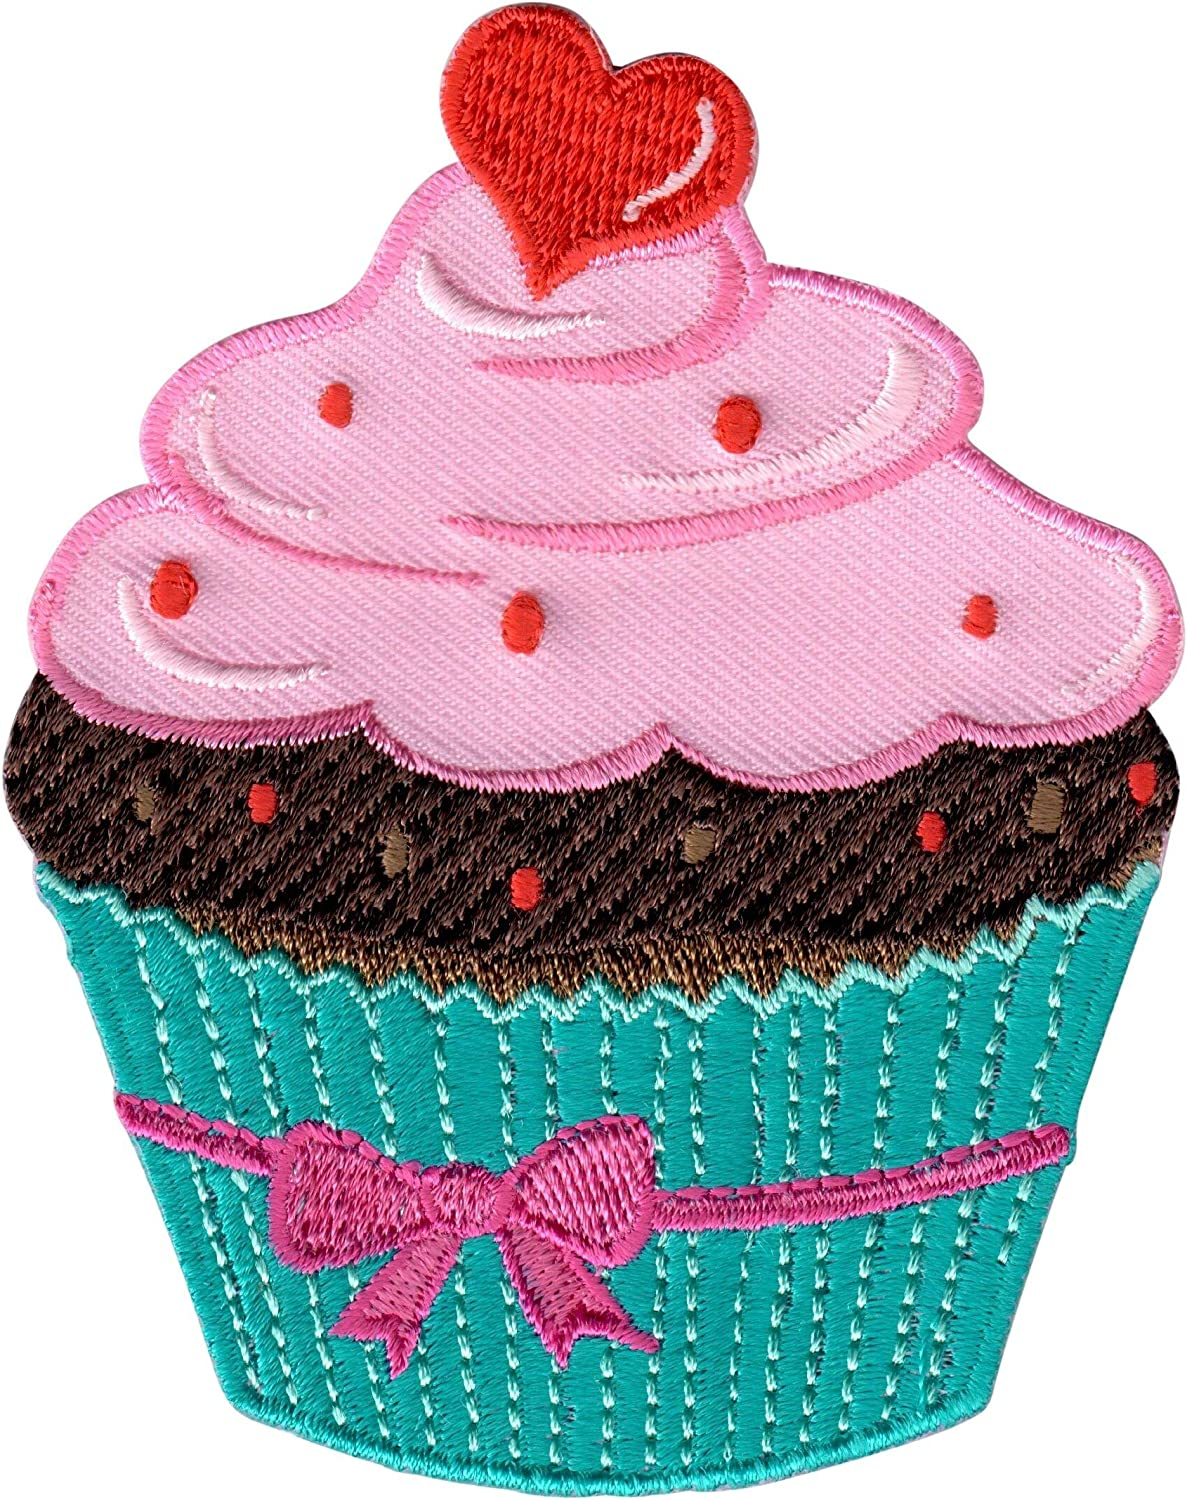 Cute Pretty Blue Cup Cake Embroidered Iron on Patch Free Shipping